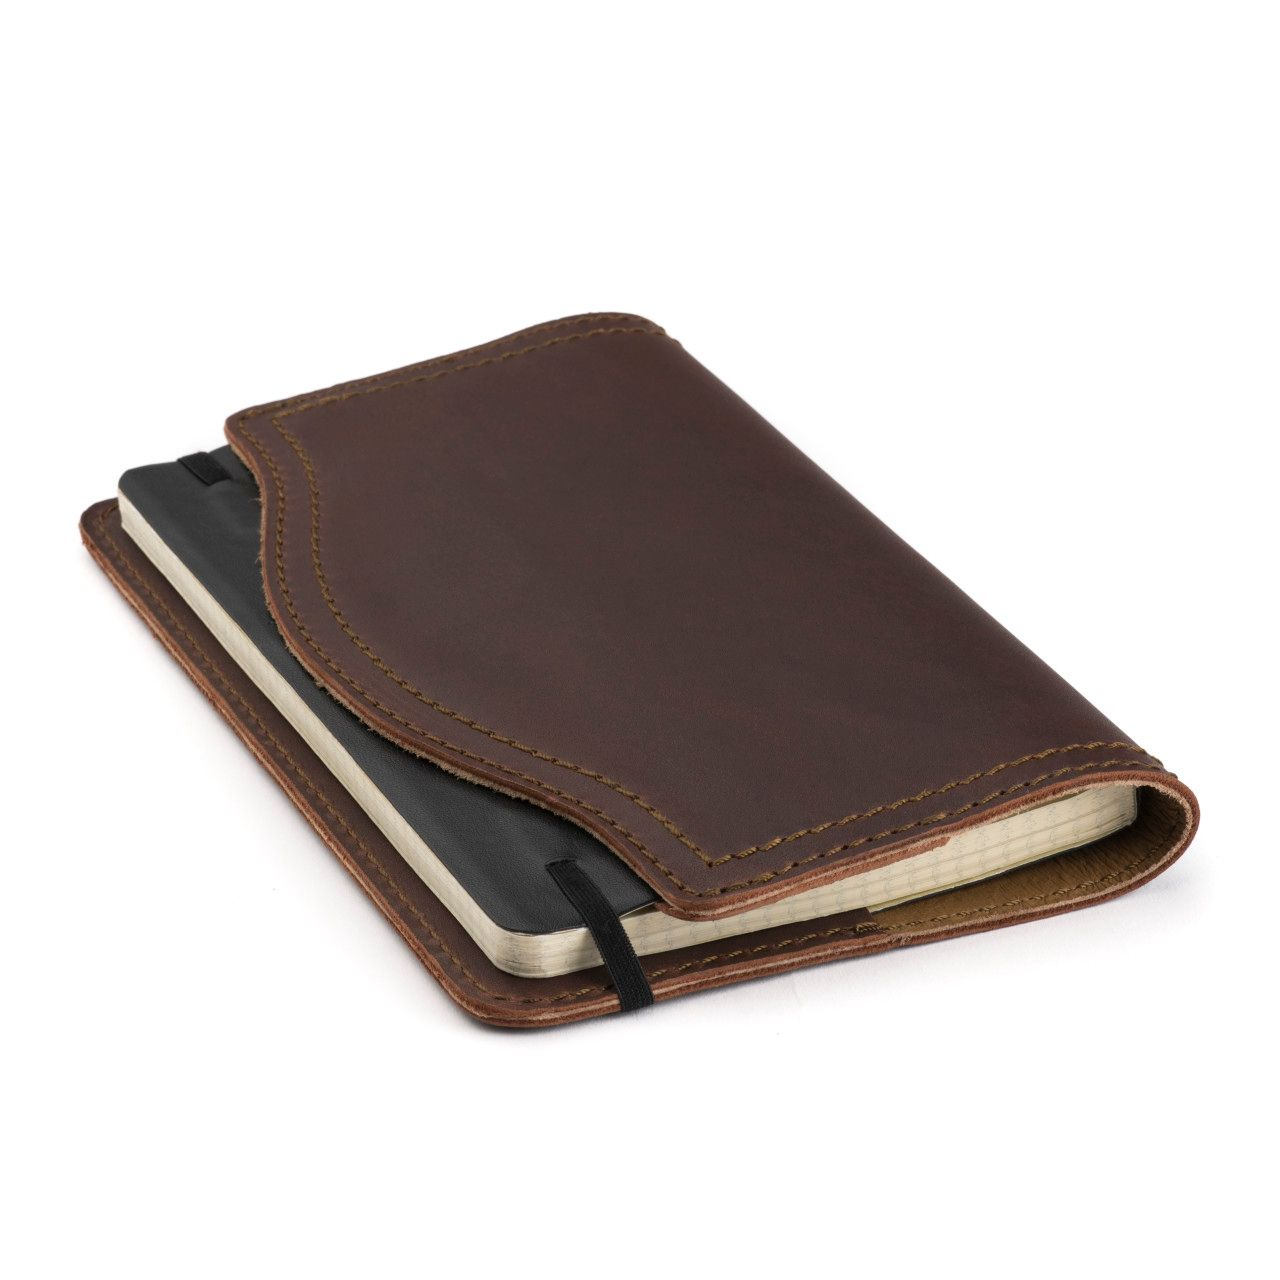 leather notebook cover medium in chestnut leather